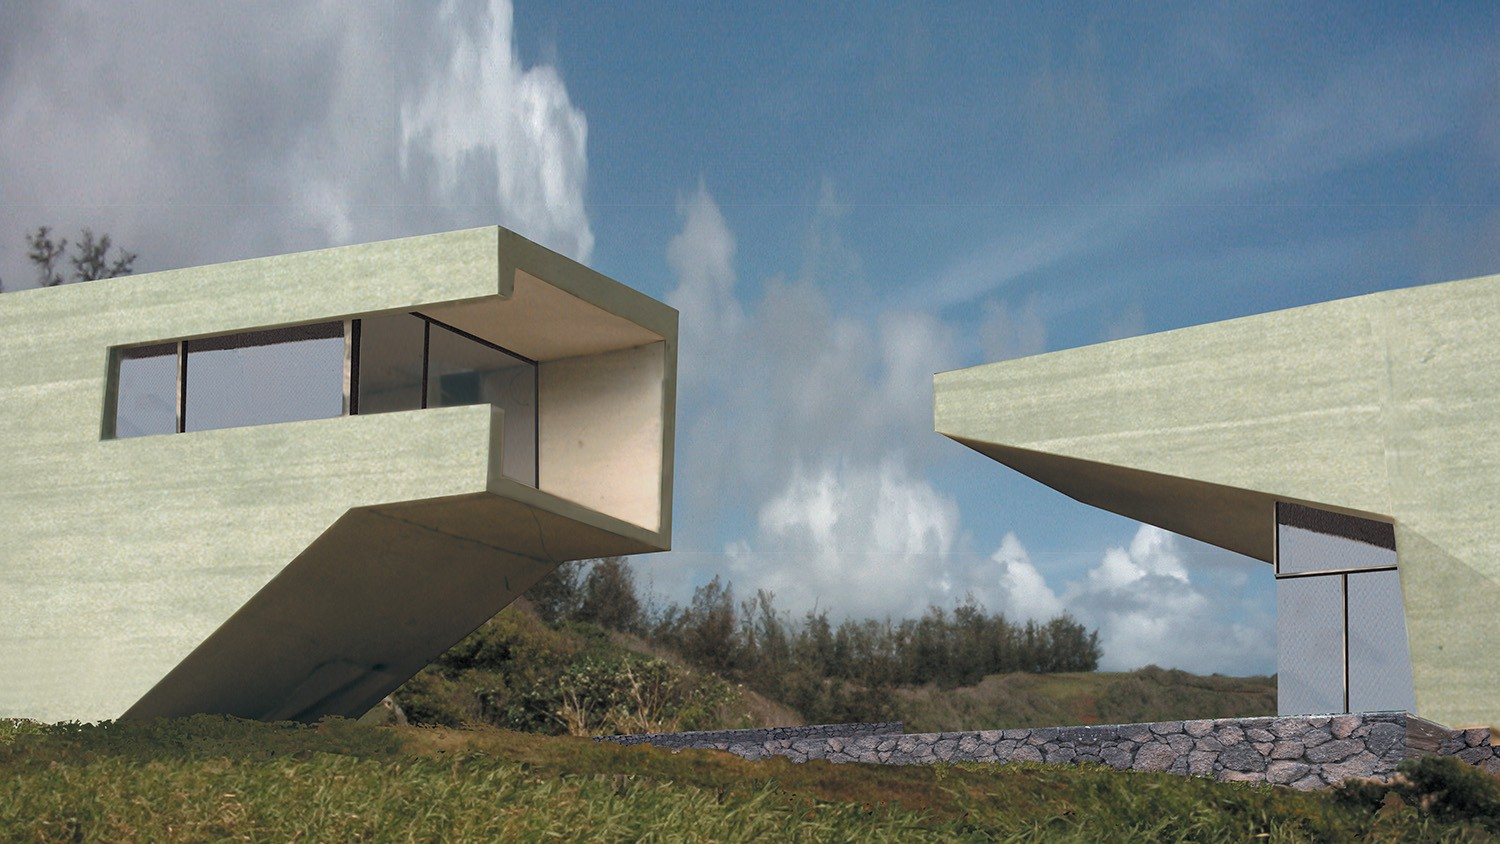 https://s3.us-east-2.amazonaws.com/steven-holl/uploads/projects/project-images/StevenHollArchitects_Oceanic_02OceanicRetreat_0901A_WH.jpg